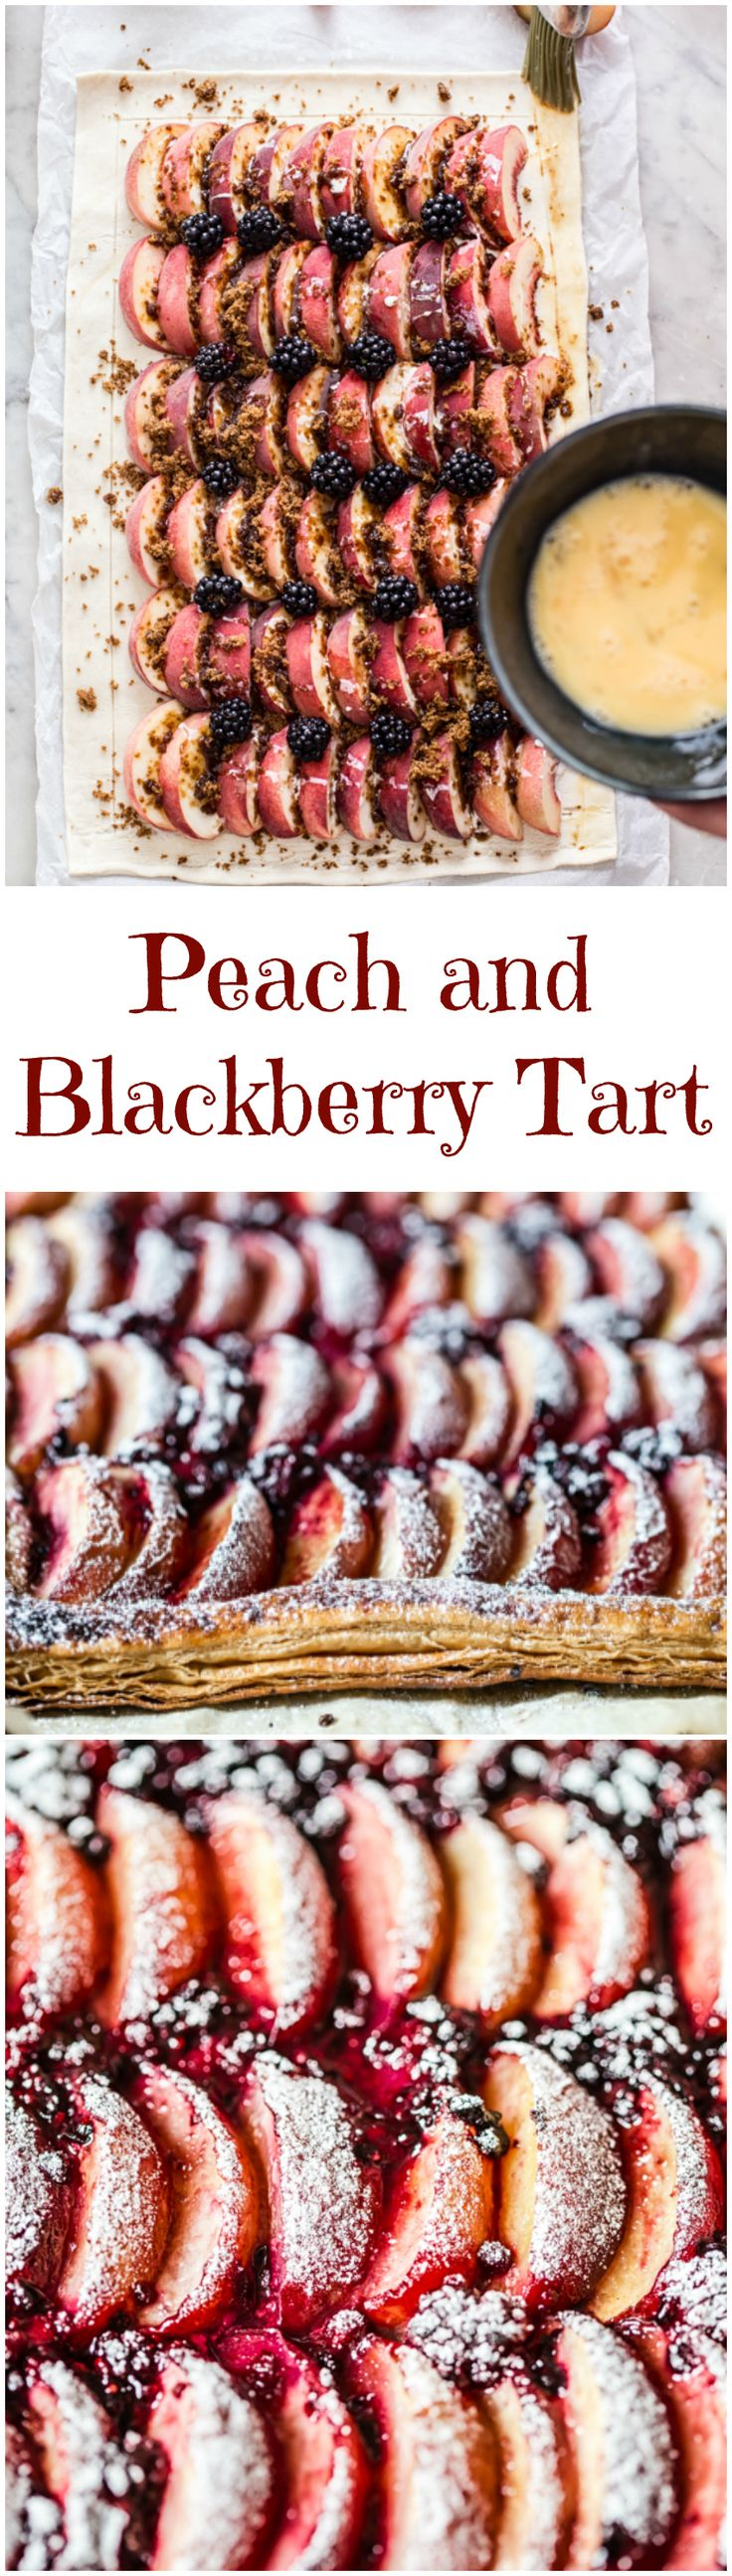 If you need dessert on the table within 45 minutes, this peach and blackberry tart made with prepared all-butter puff pastry is your answer!